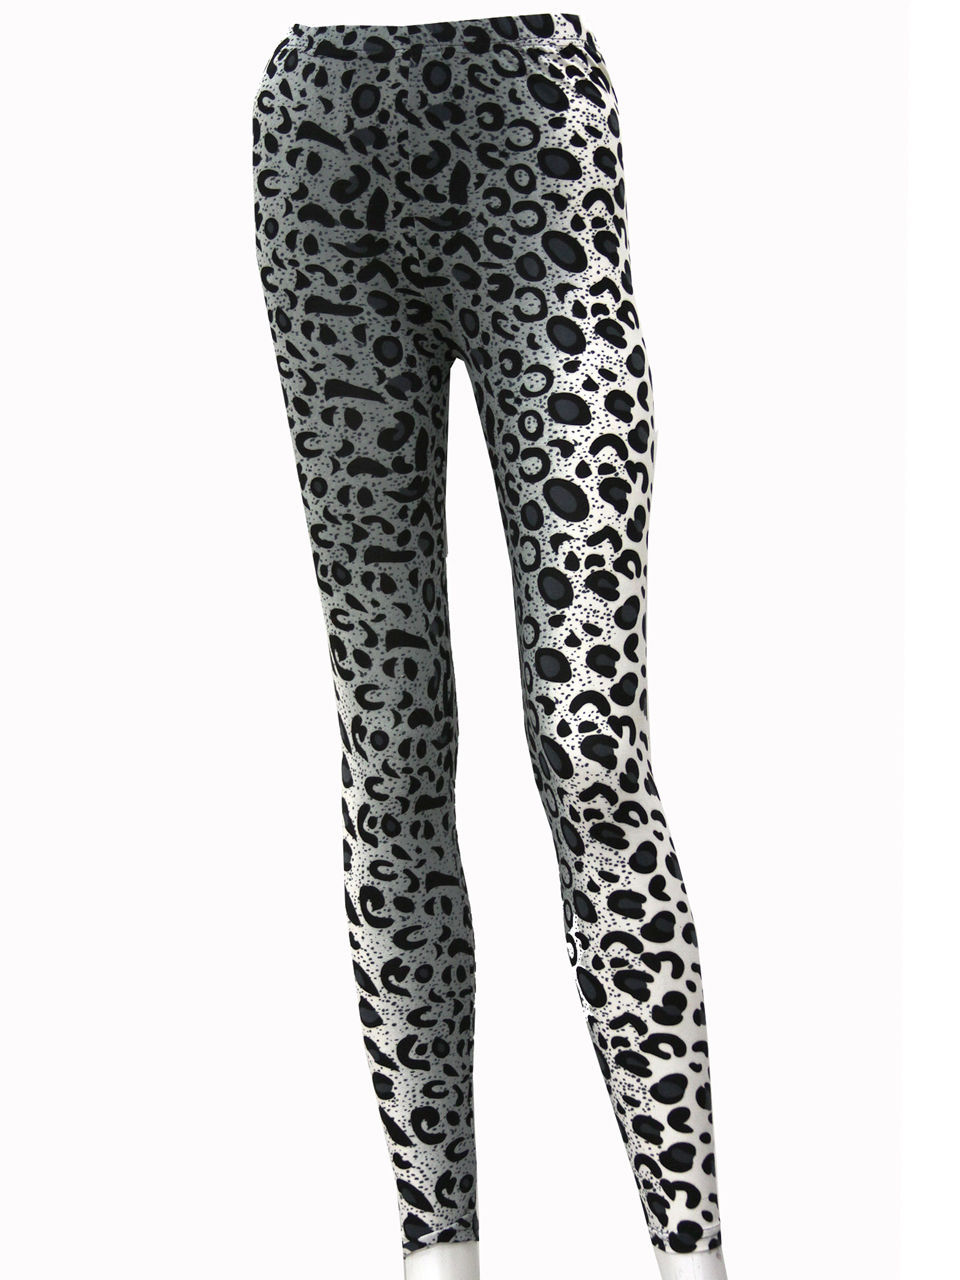 Fashion Mic Womens Animal Leopard Print Casual Everyday Leggings